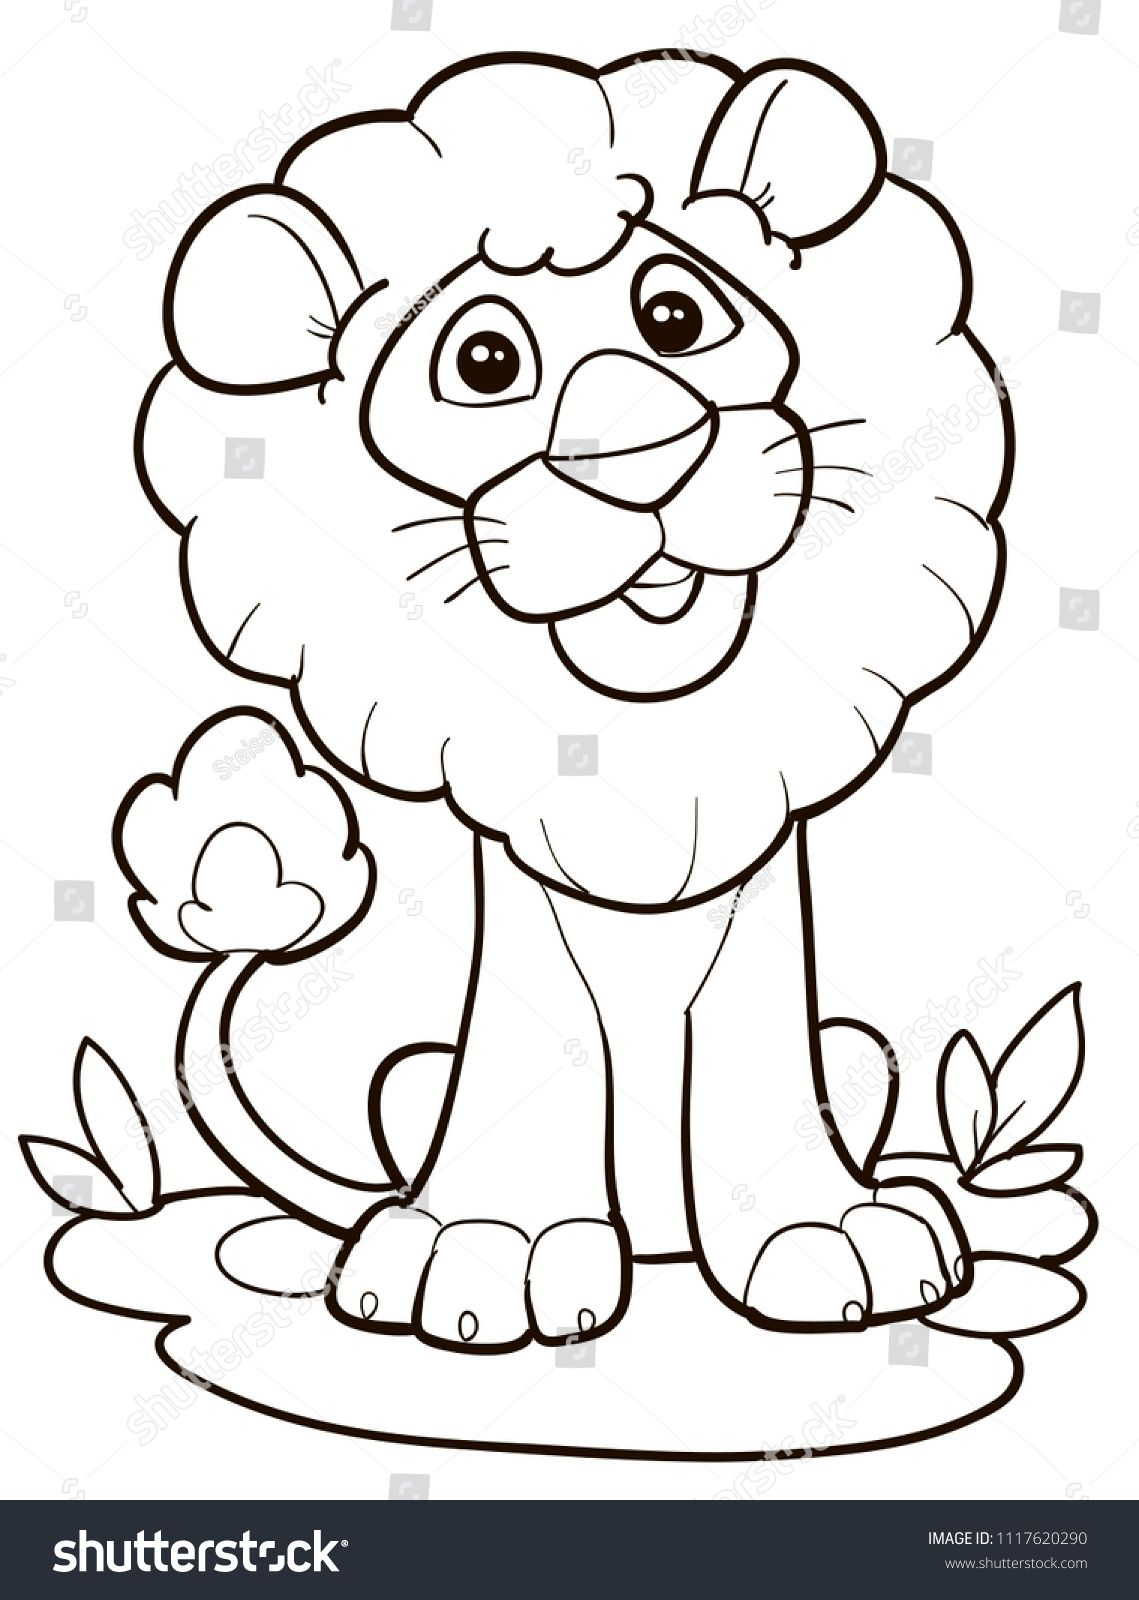 Coloring Page Outline Of Cartoon Cute Lion Vector Illustration Summer Coloring Book For Kids Cartoon Lion Coloring Pages Animal Coloring Pages Cartoon Lion